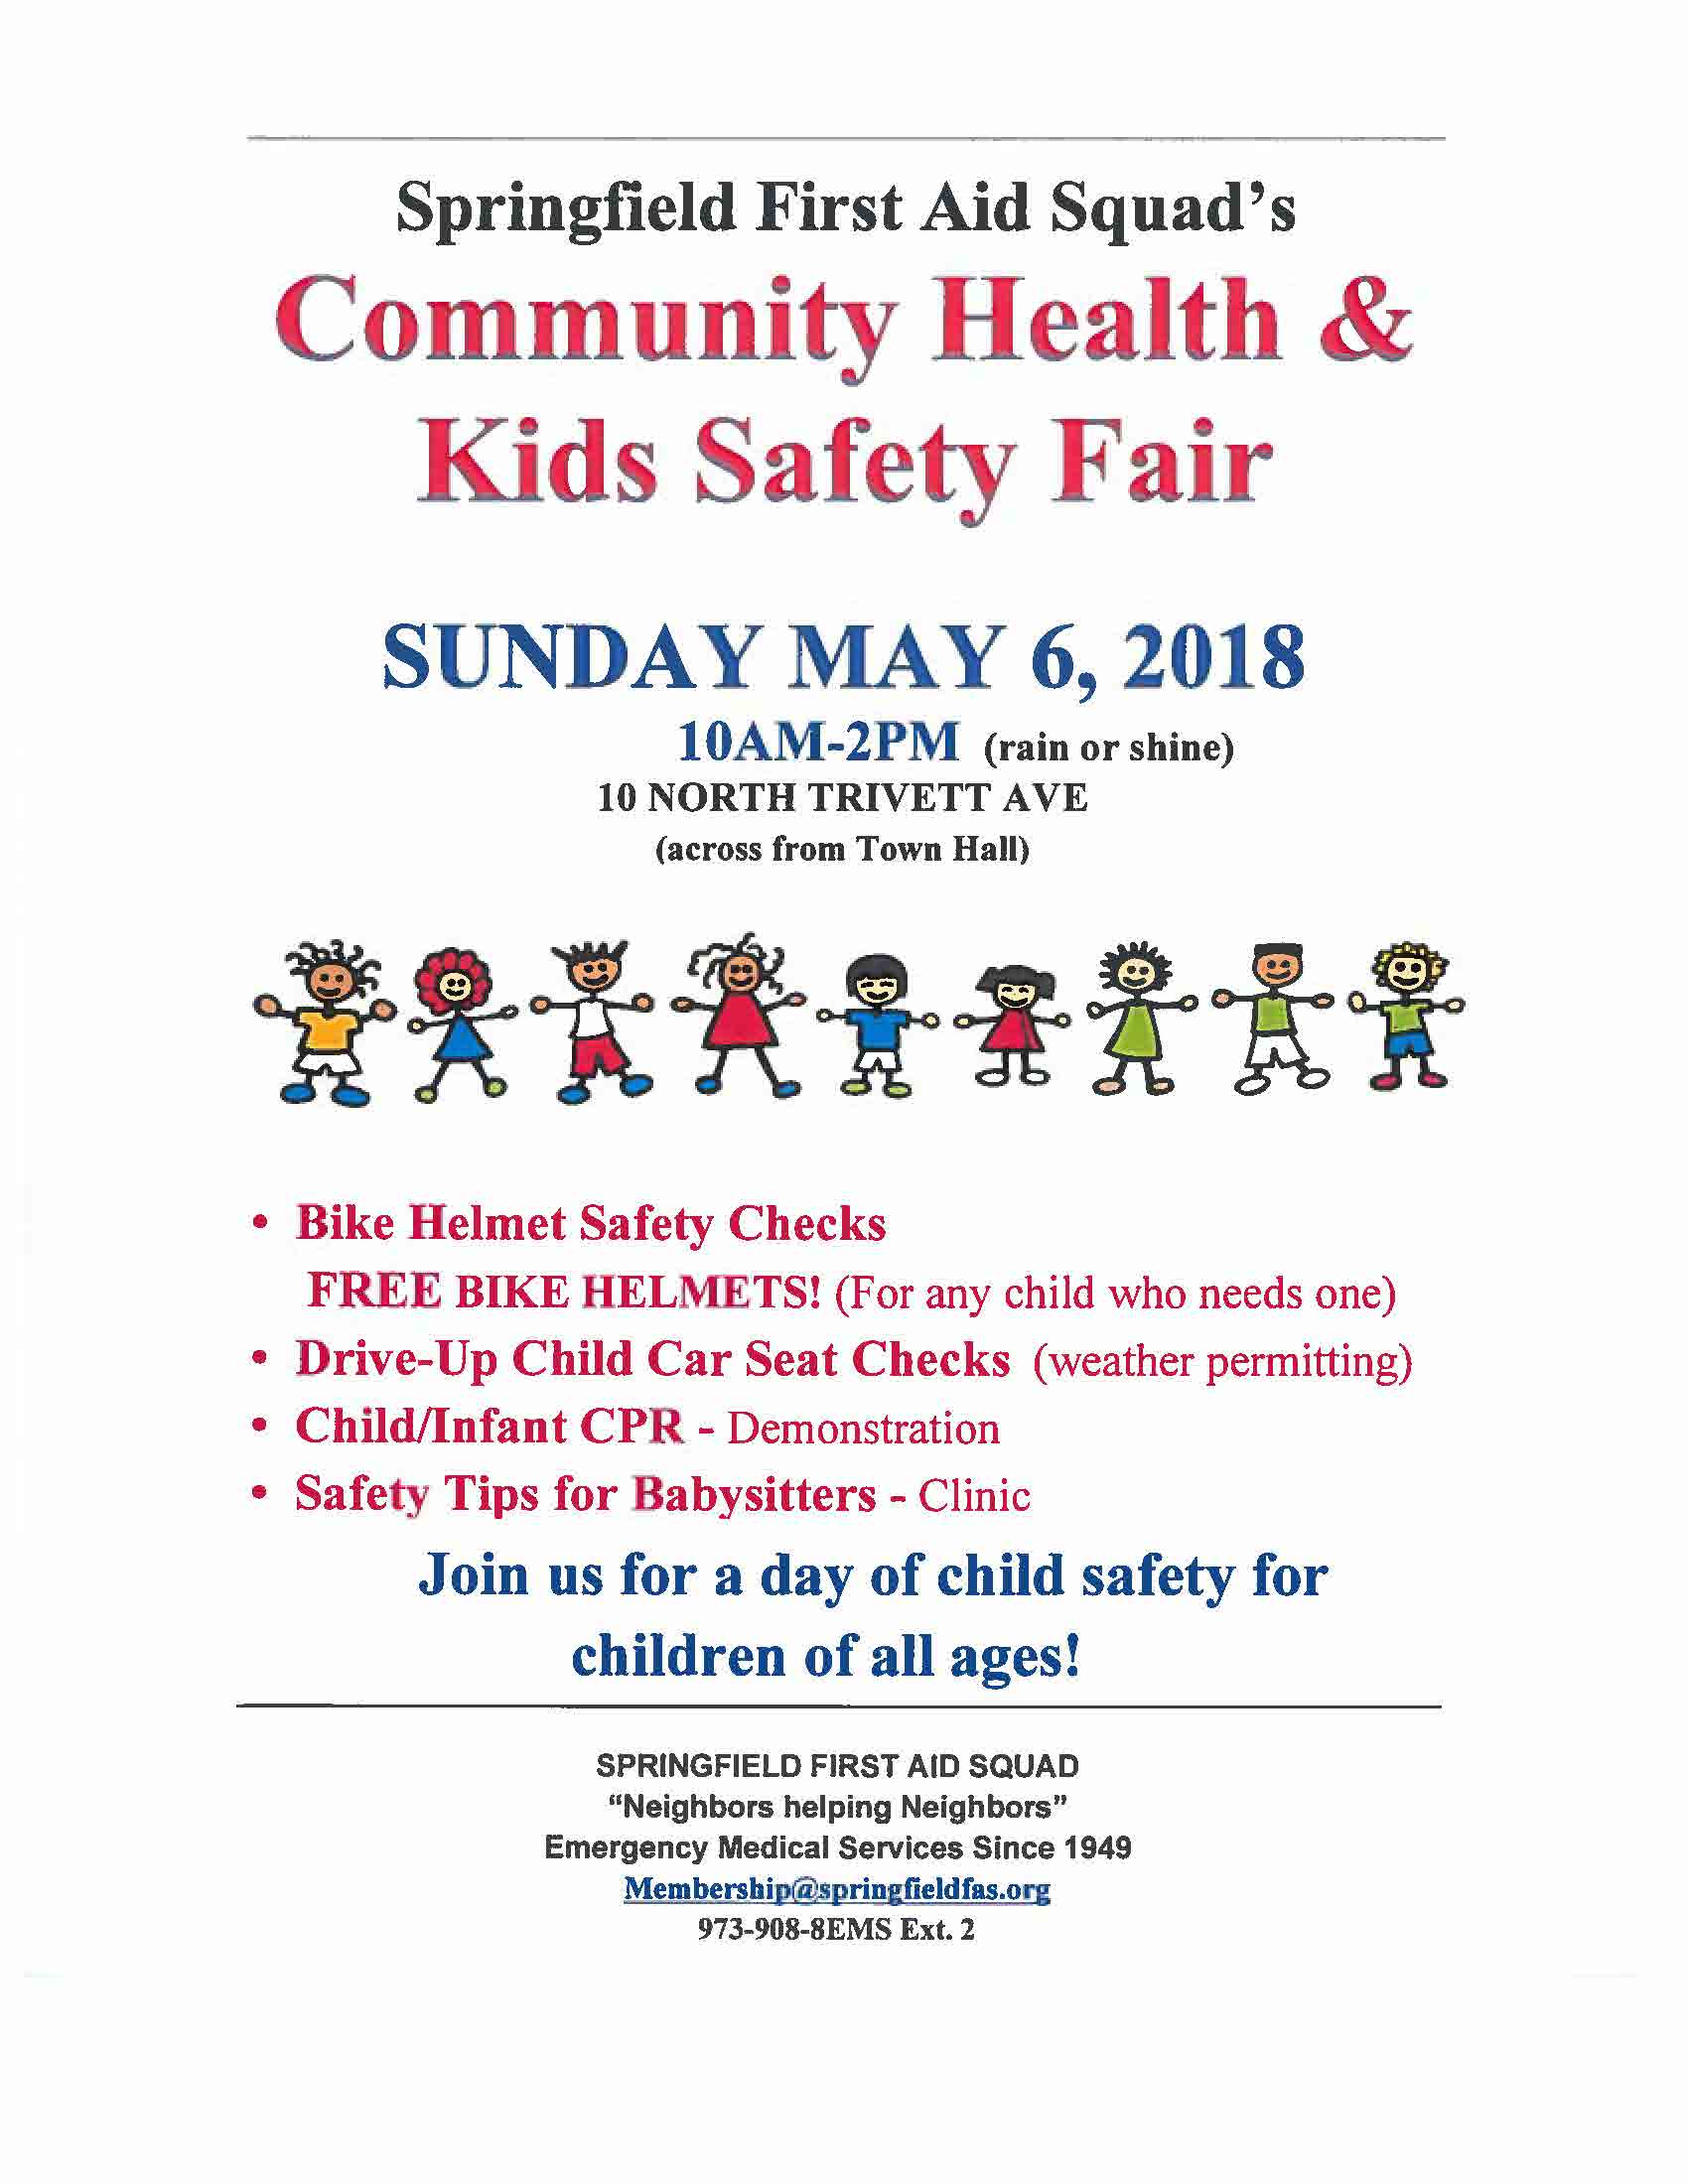 community health and Kids safety fair, Sunday, may 6